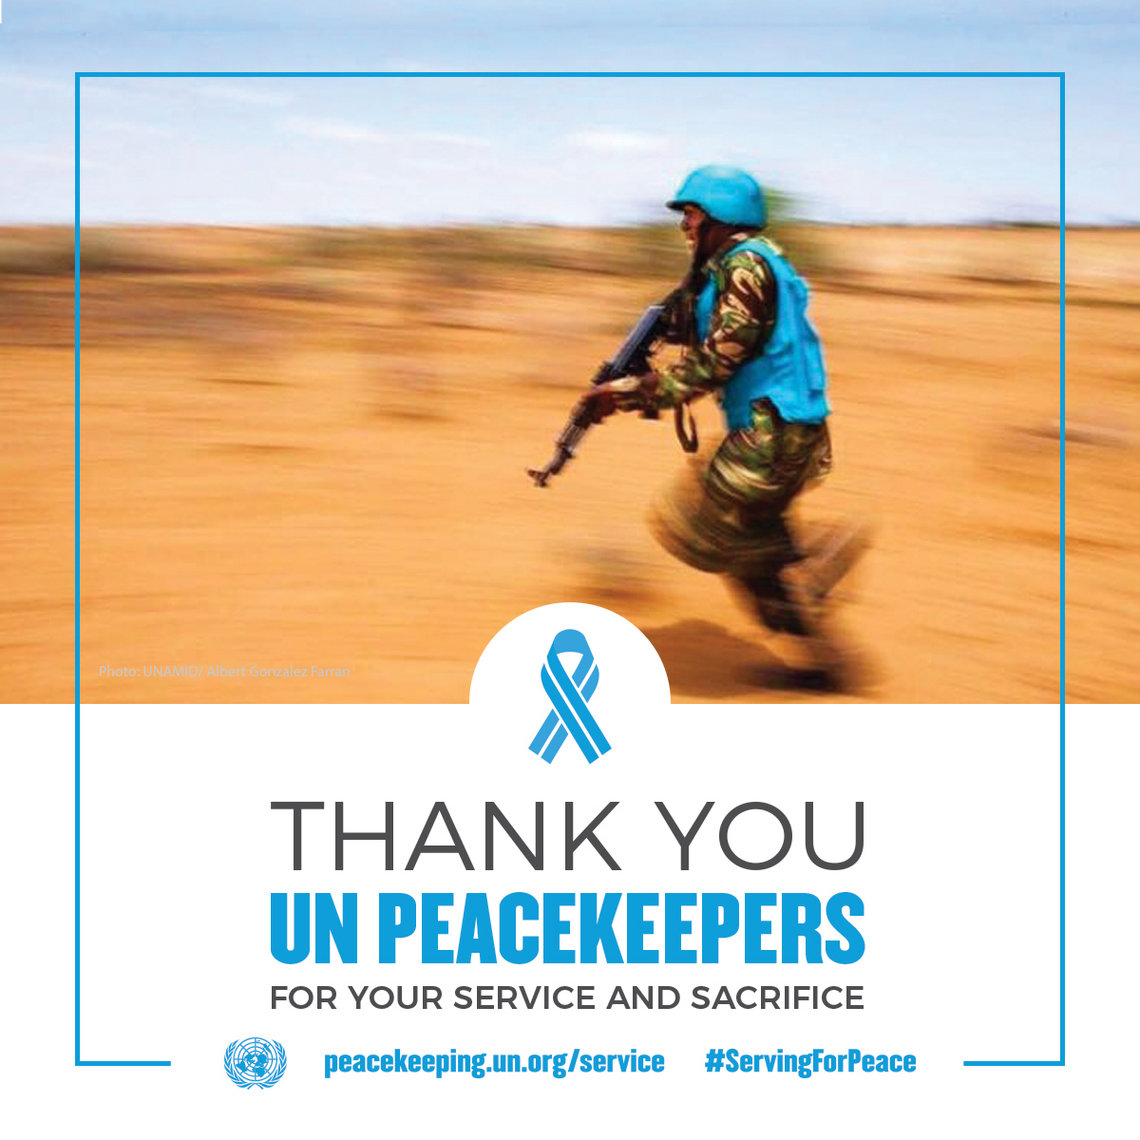 Thank you peacekeepers for your service and sacrifice